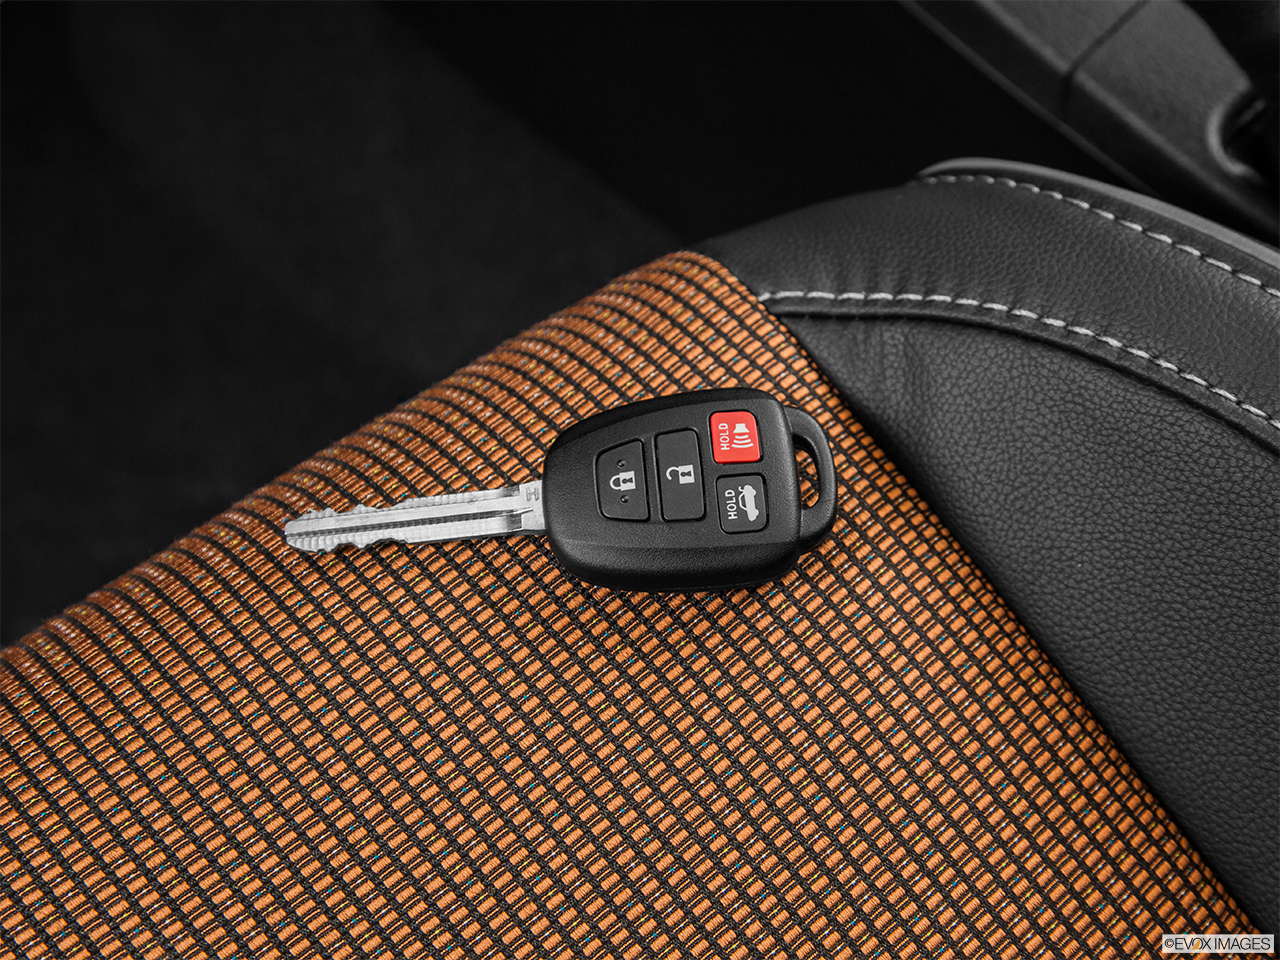 2014 Toyota Corolla Sedan Cvt S Key Fob On Driver S Seat